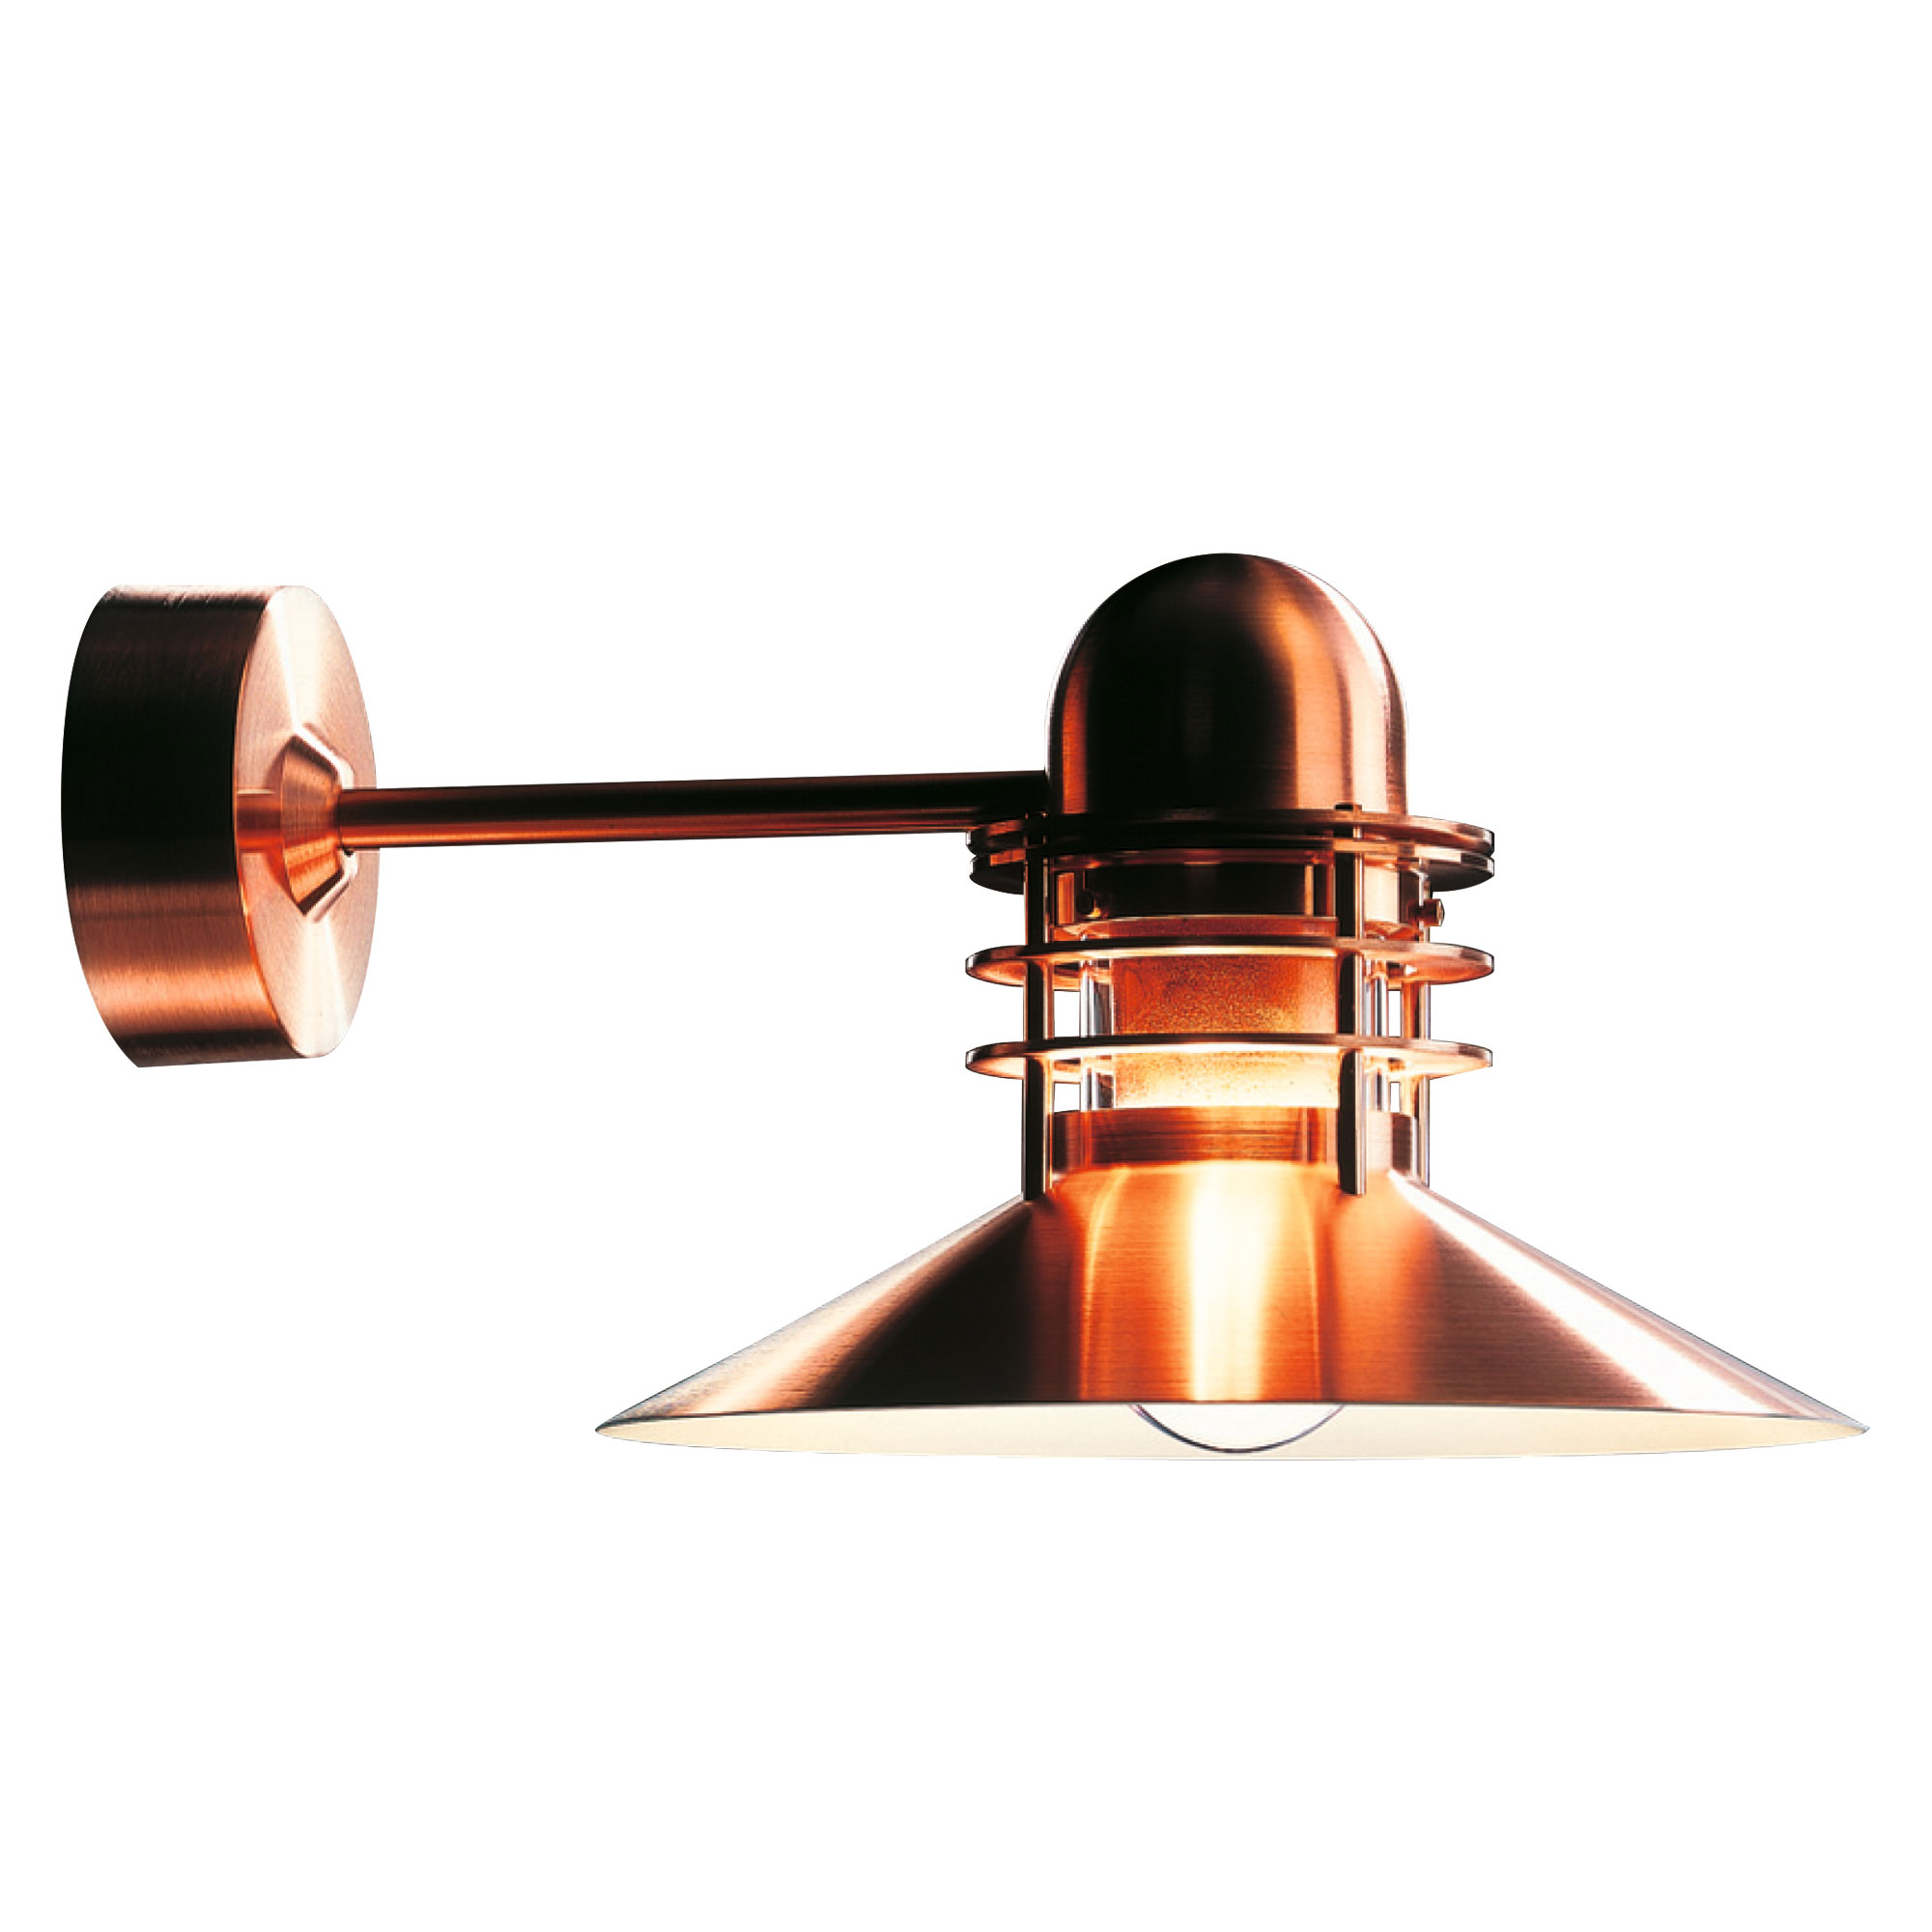 Outdoor wall sconce by louis poulsen 5743909379 nyhavn outdoor wall sconce by louis poulsen 5743909379 amipublicfo Gallery